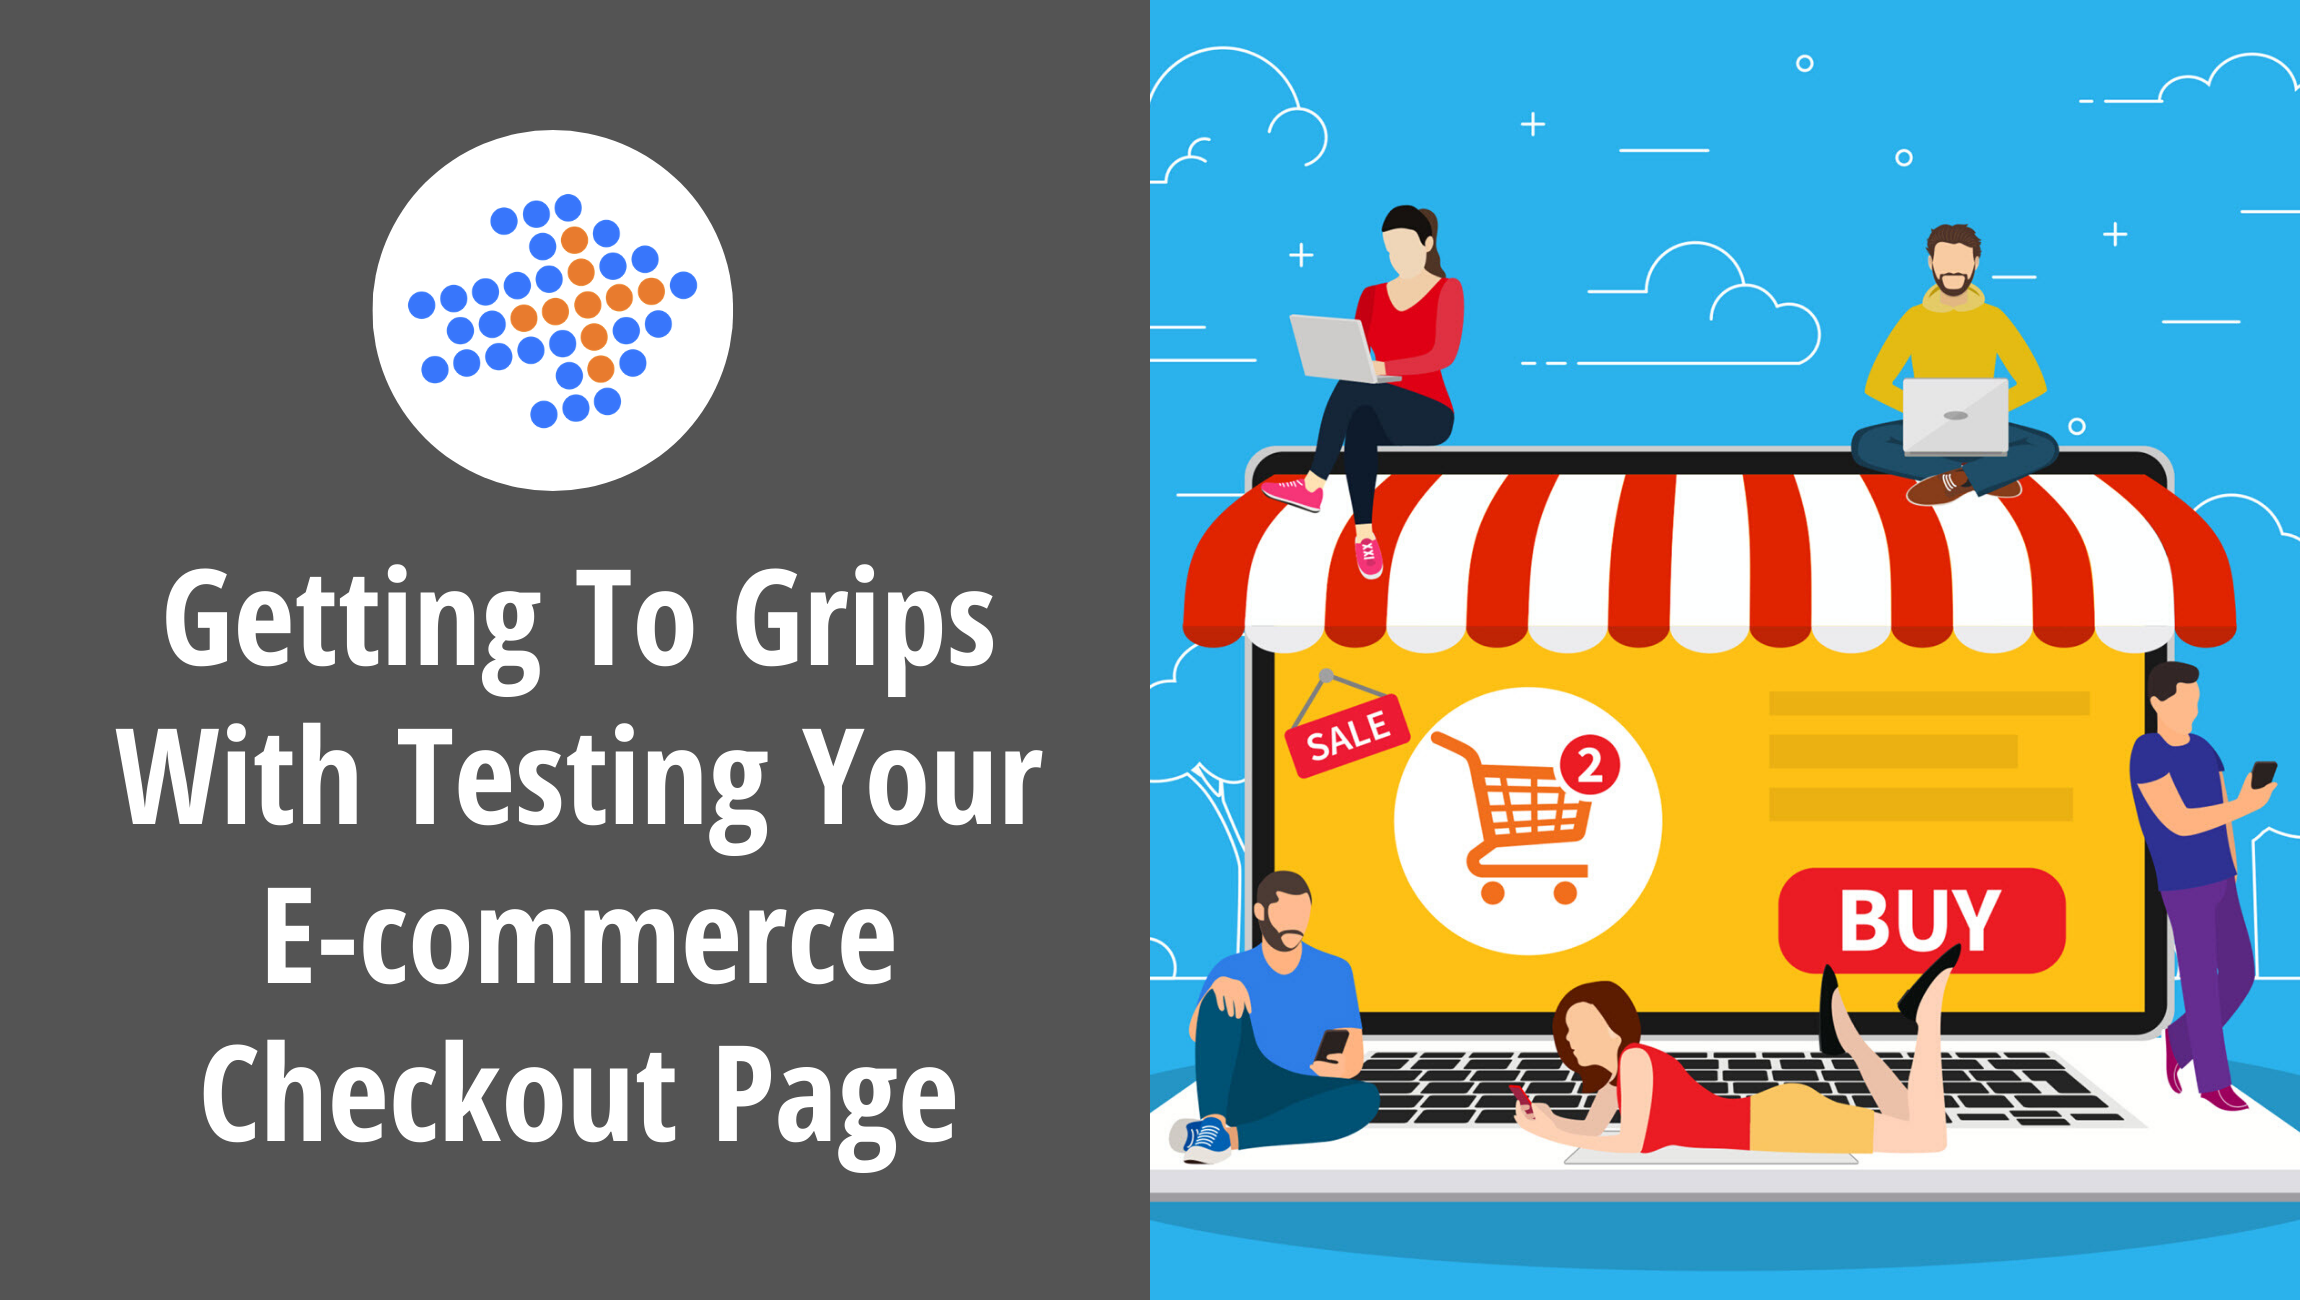 Getting To Grips With Testing Your E-commerce Checkout Page